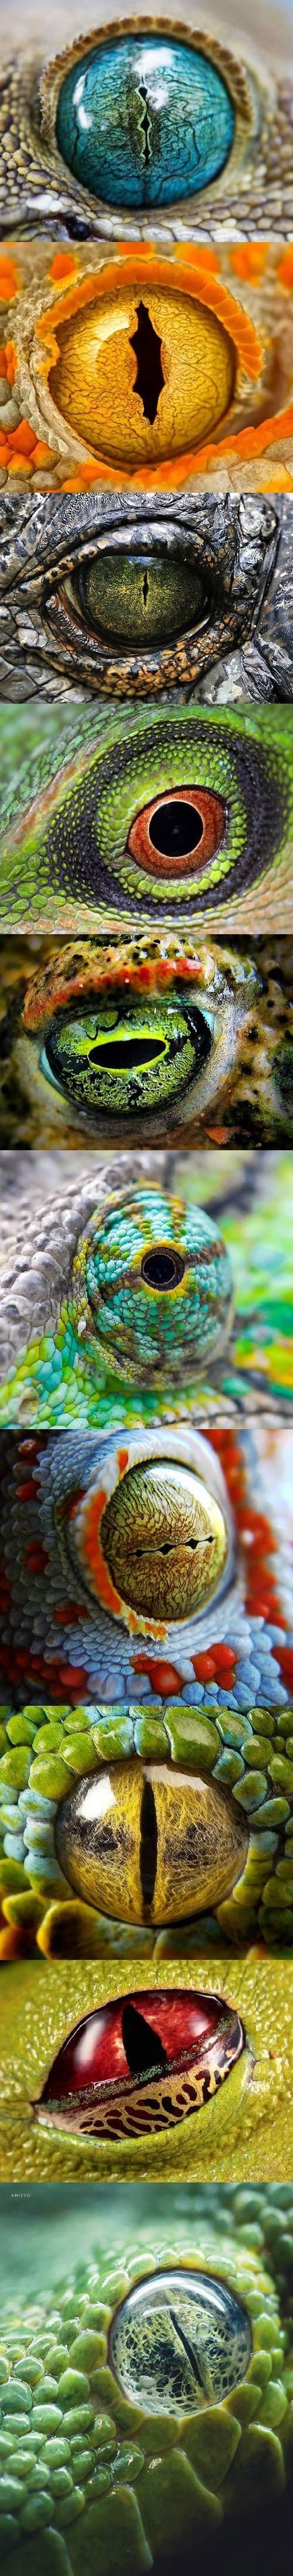 The round pupil in a lizard is generally better adapted for diurnal species whereas slit pupils are found in nocturnal species.  Most lizards can see in color and some have opsin proteins which allow them to see in ultraviolet wavelengths that the human eye cannot perceive.